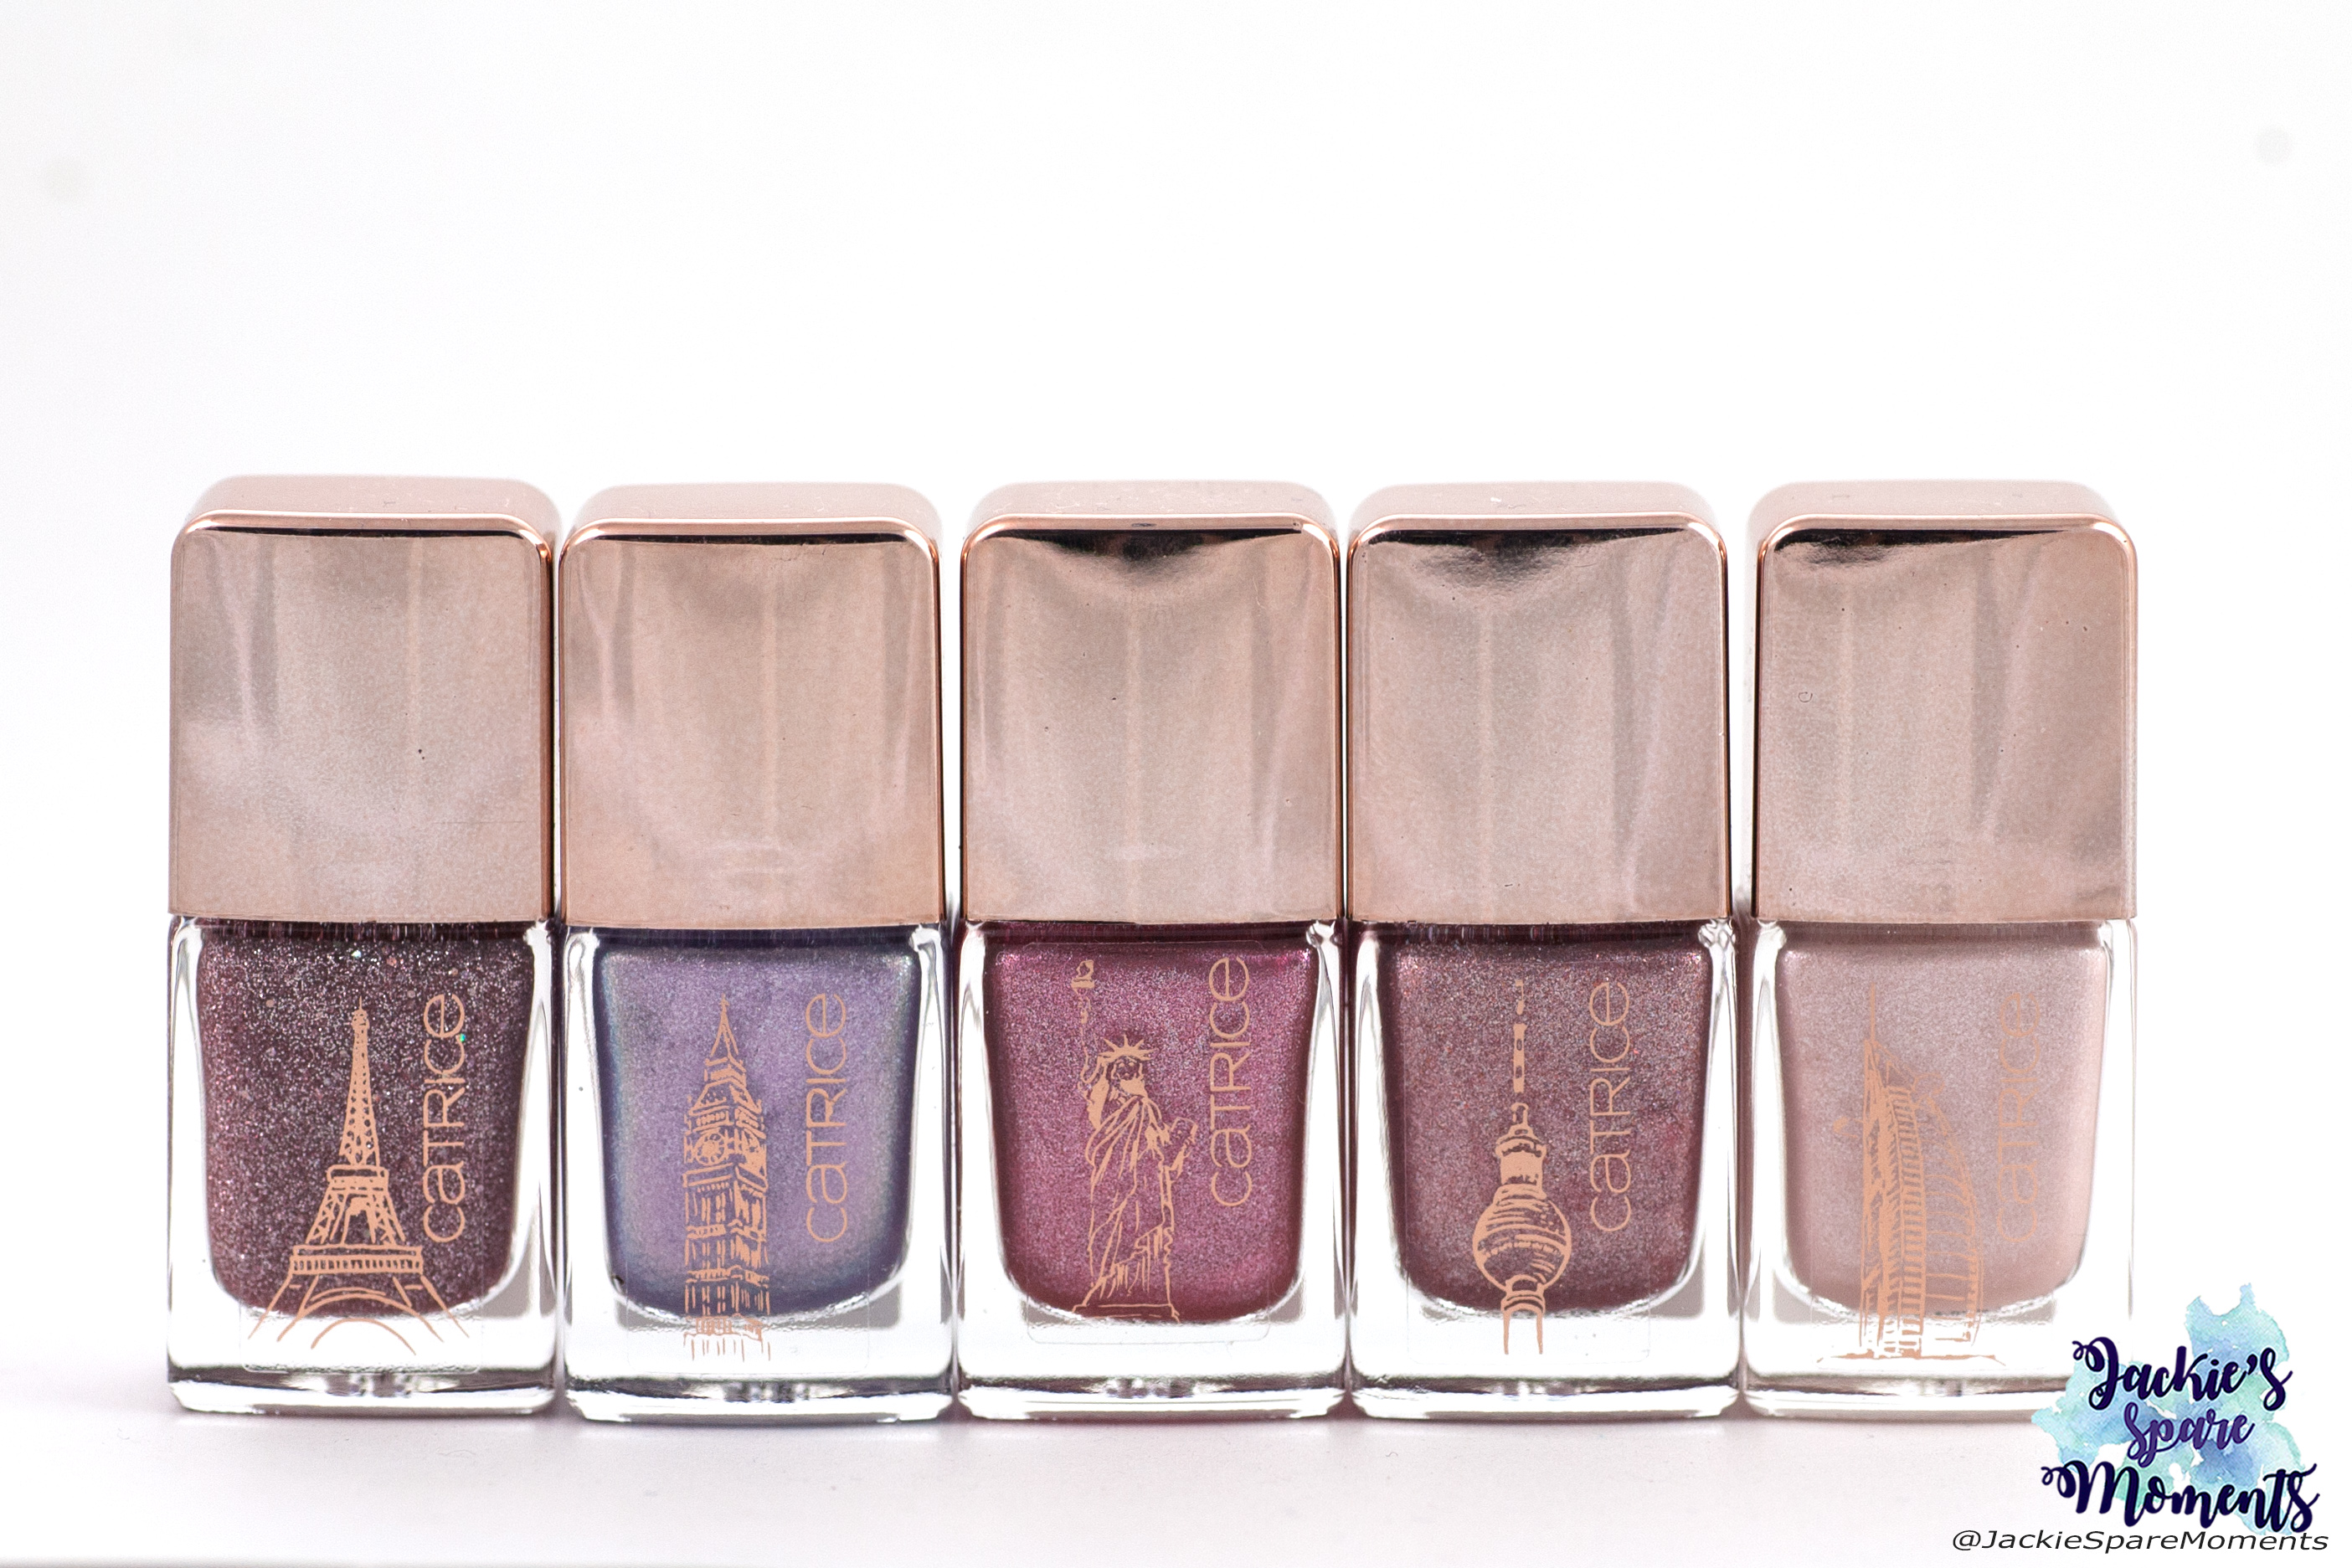 The 5 limited edition Travel ICONails shades